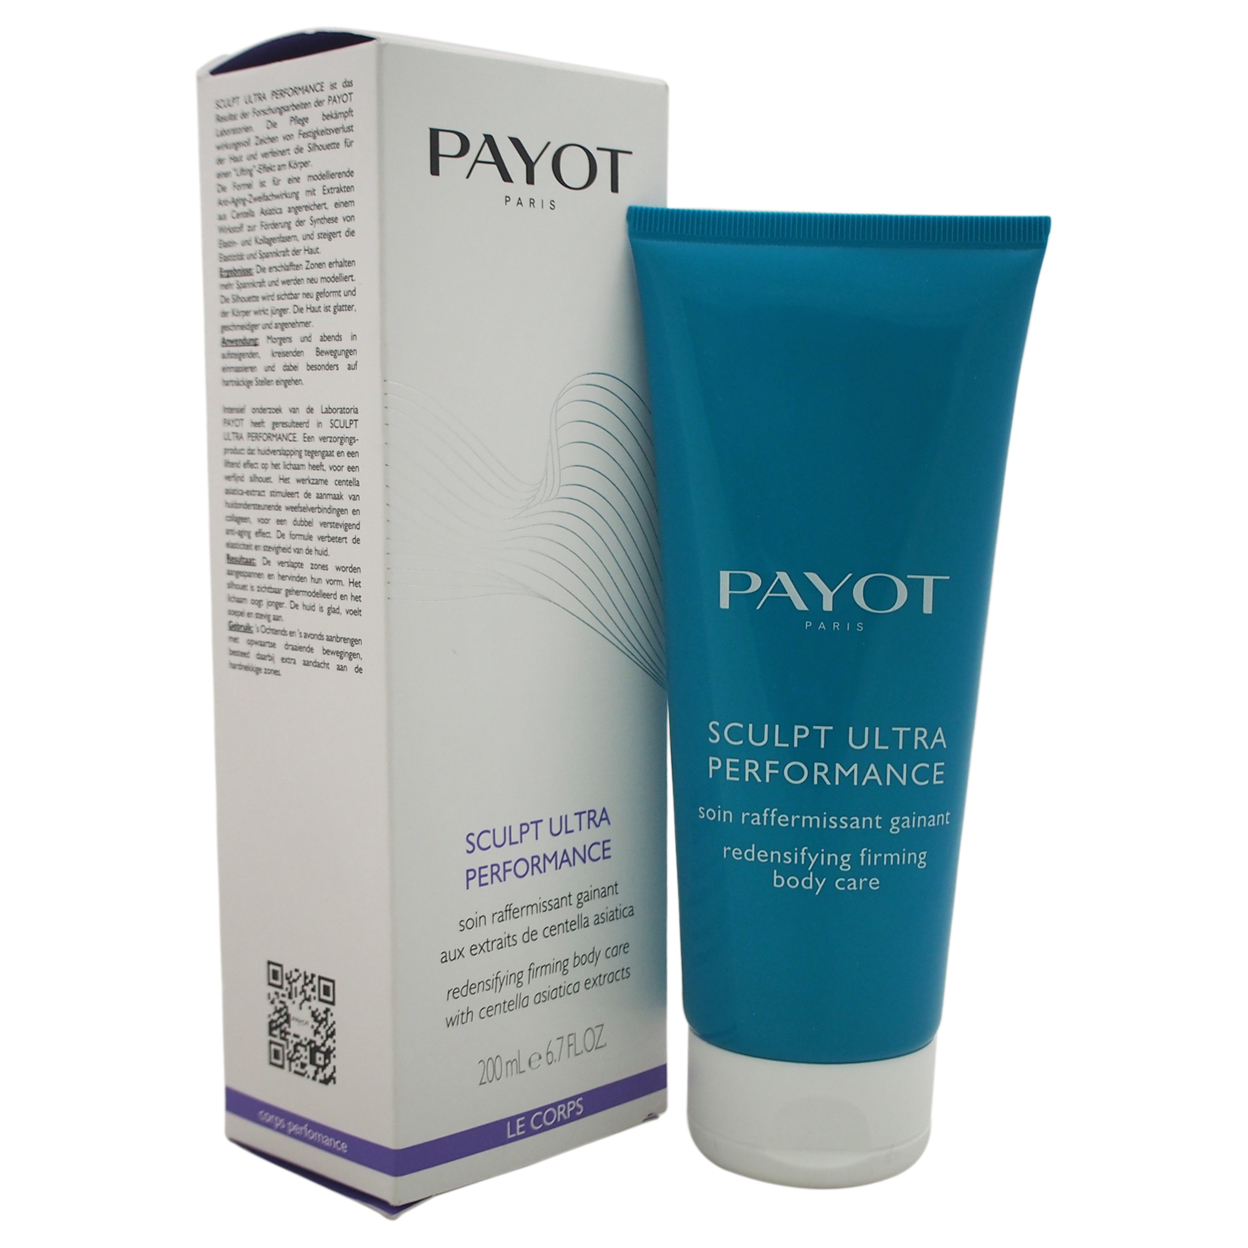 Sculpt Ultra Performance Redensifying Firming Body Care By Payot For Women 6.7 Oz Treatment